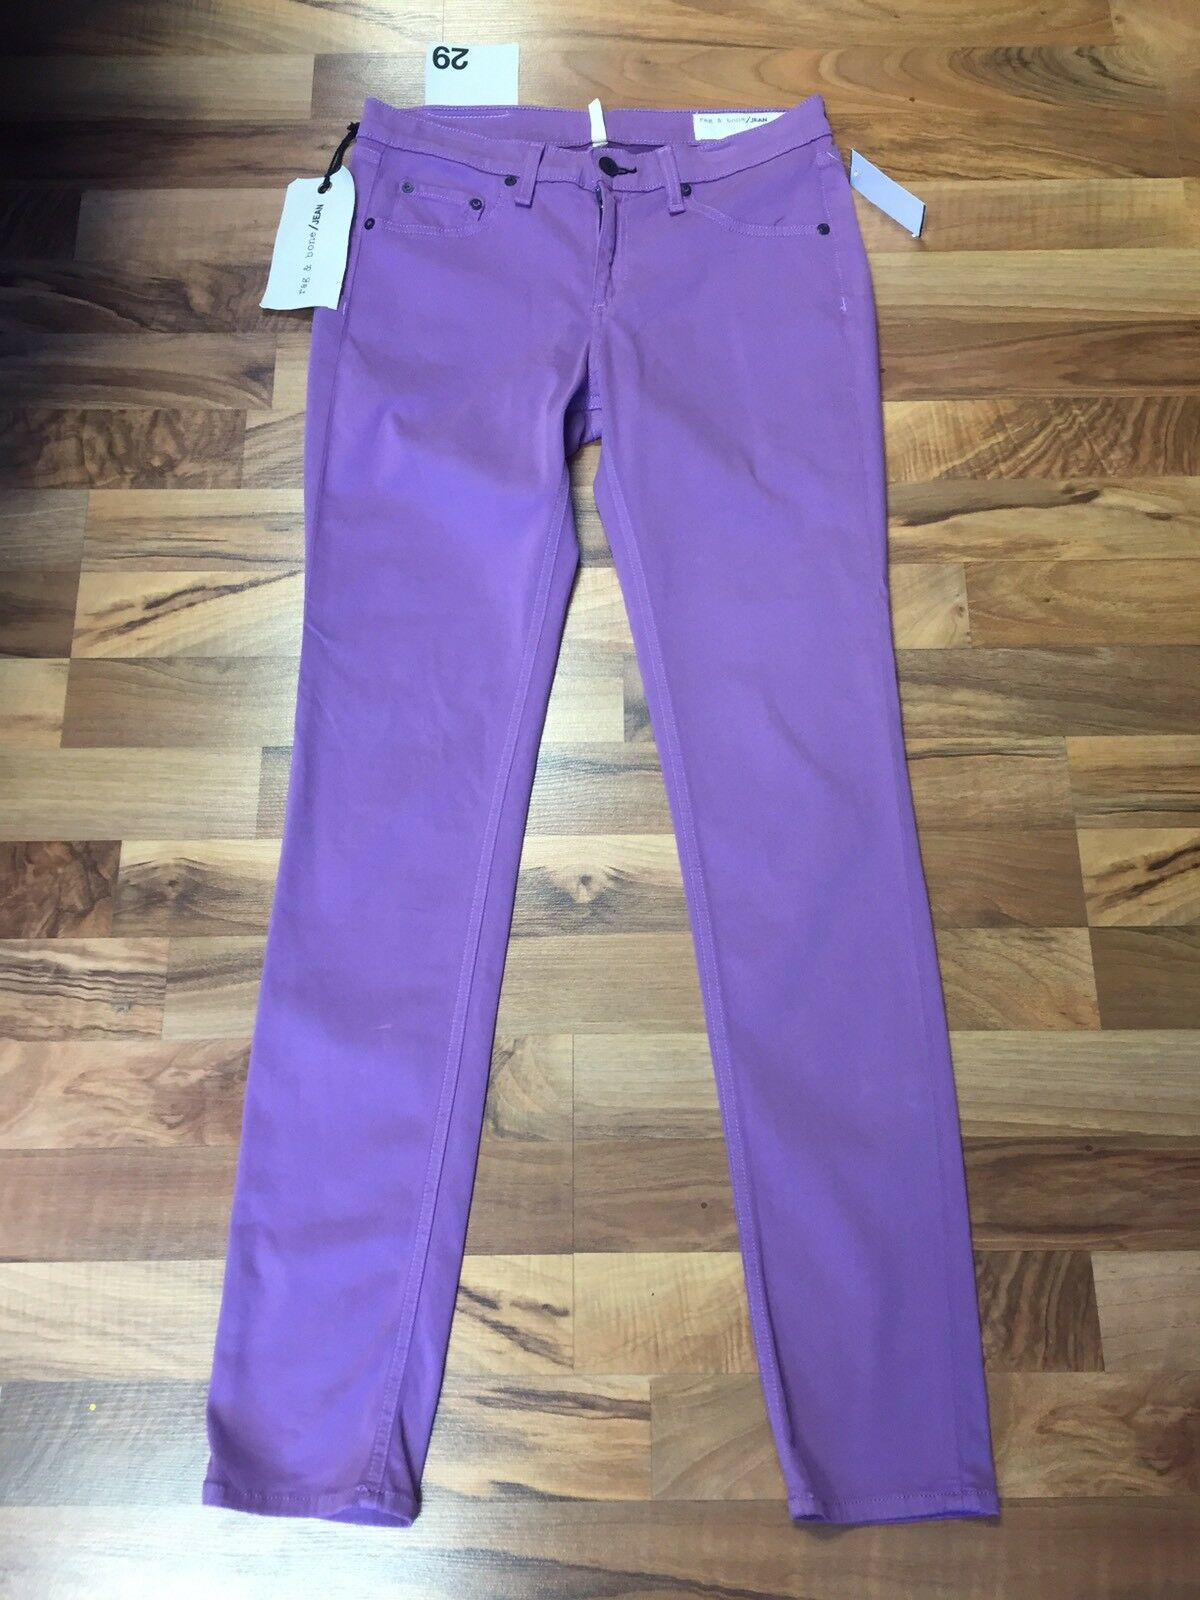 NWT Rag & Bone Jean purple Leggings 29 Retail  187